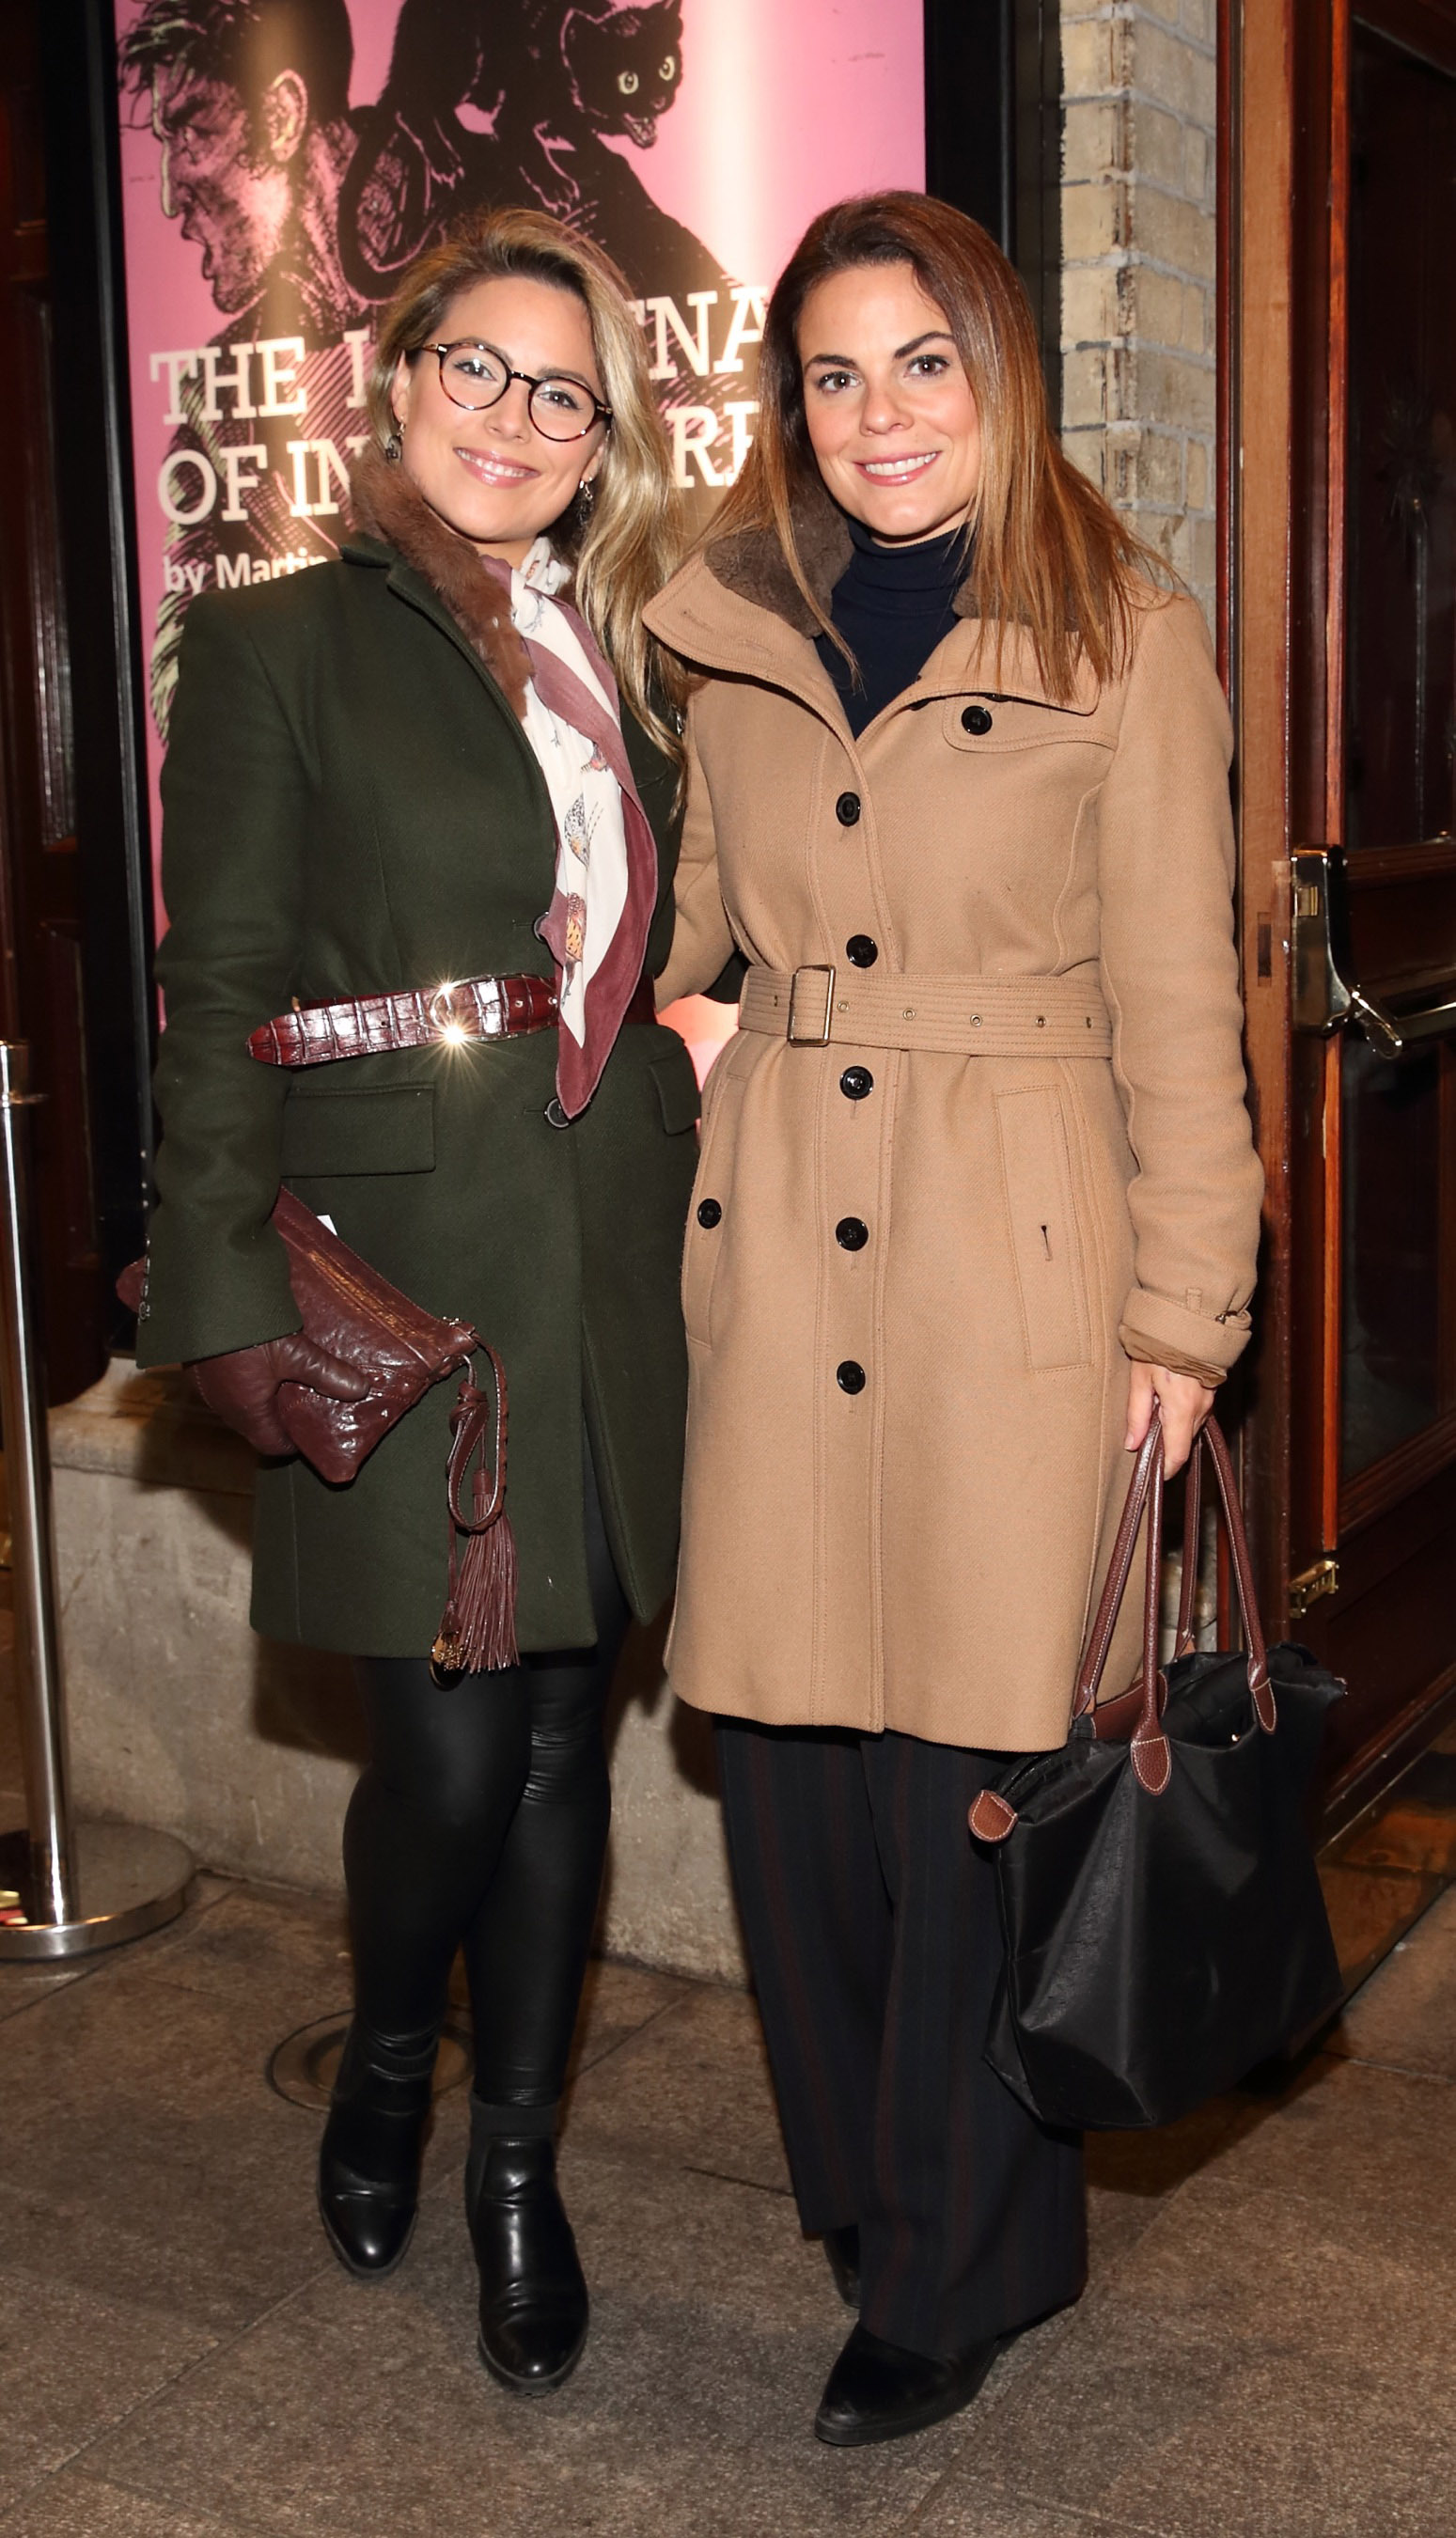 Chloe Townsend and Avila Lipsett pictured at the opening of the Gaiety Theatre's major new production of Martin McDonagh's 'The Lieutenant of Inishmore', which will run at the Gaiety Theatre until 14th March.